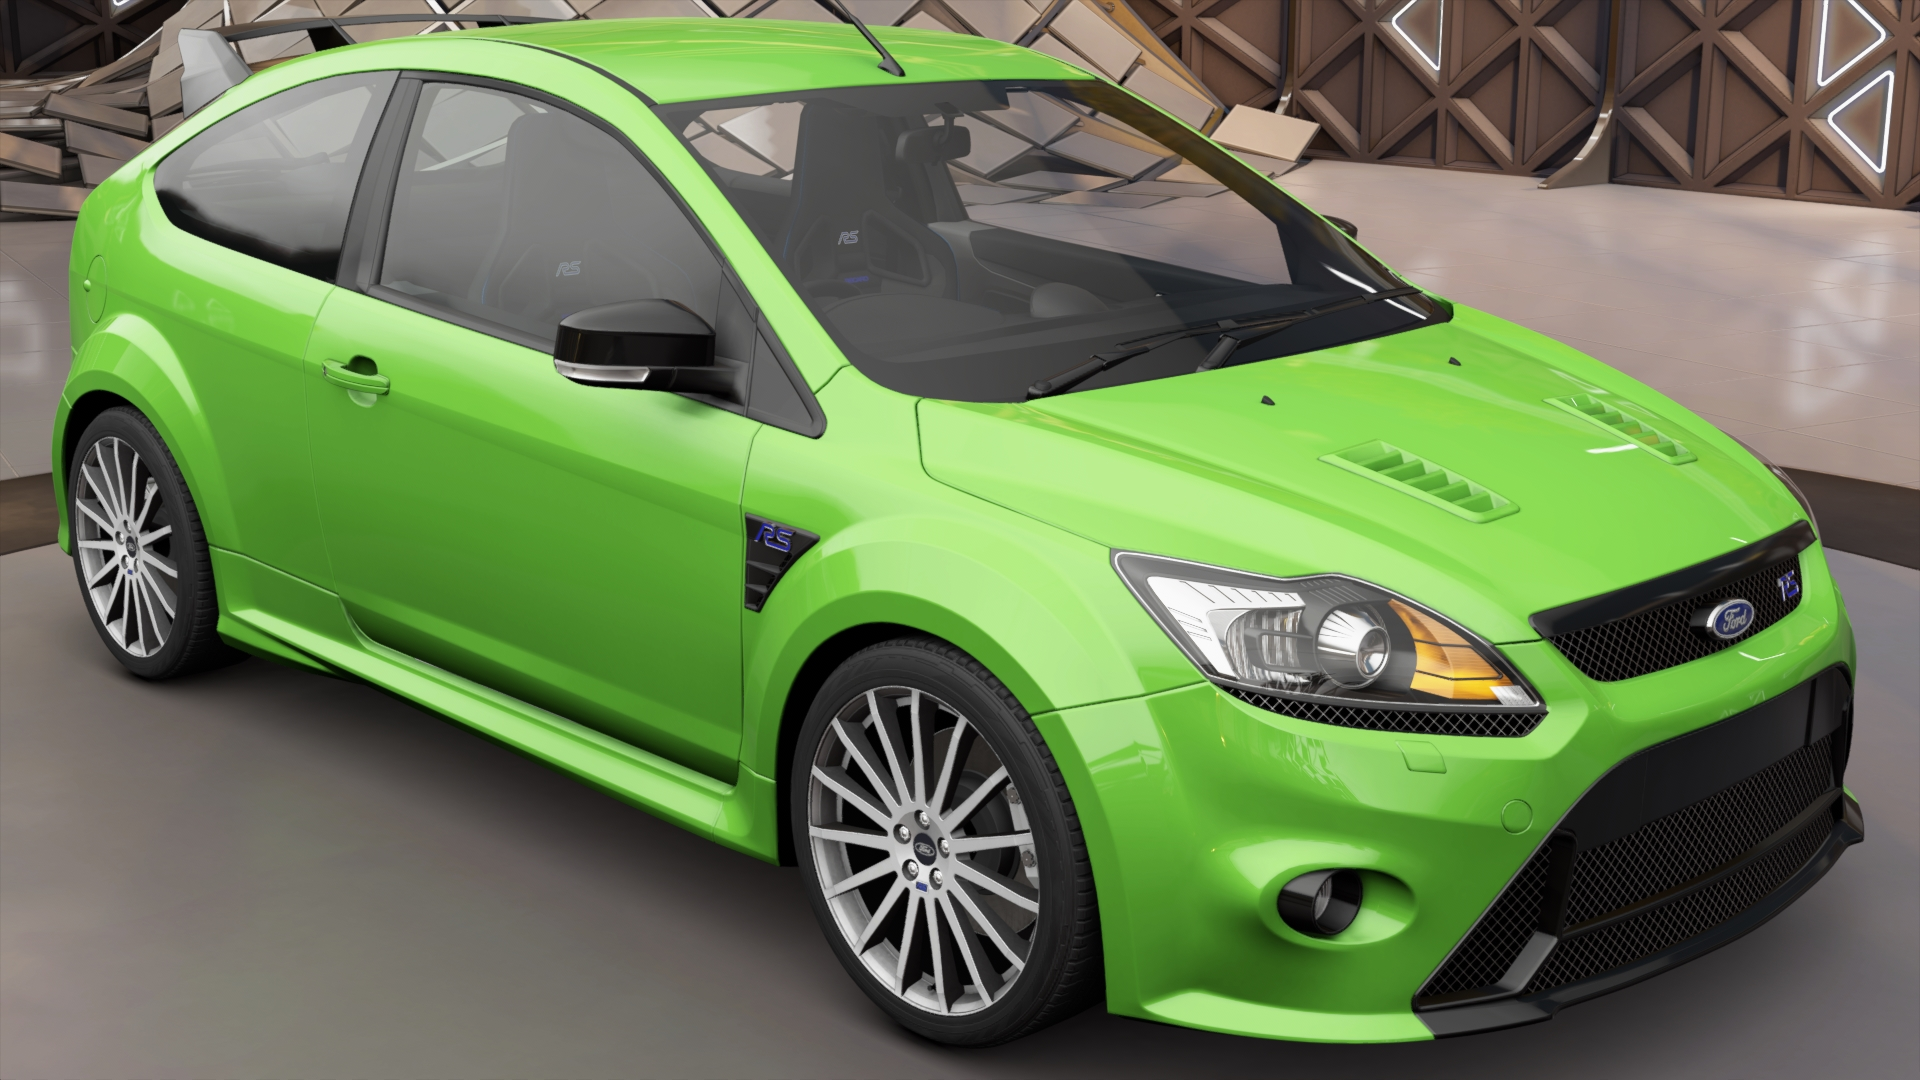 ford focus rs 2009 forza motorsport wiki fandom powered by wikia. Black Bedroom Furniture Sets. Home Design Ideas